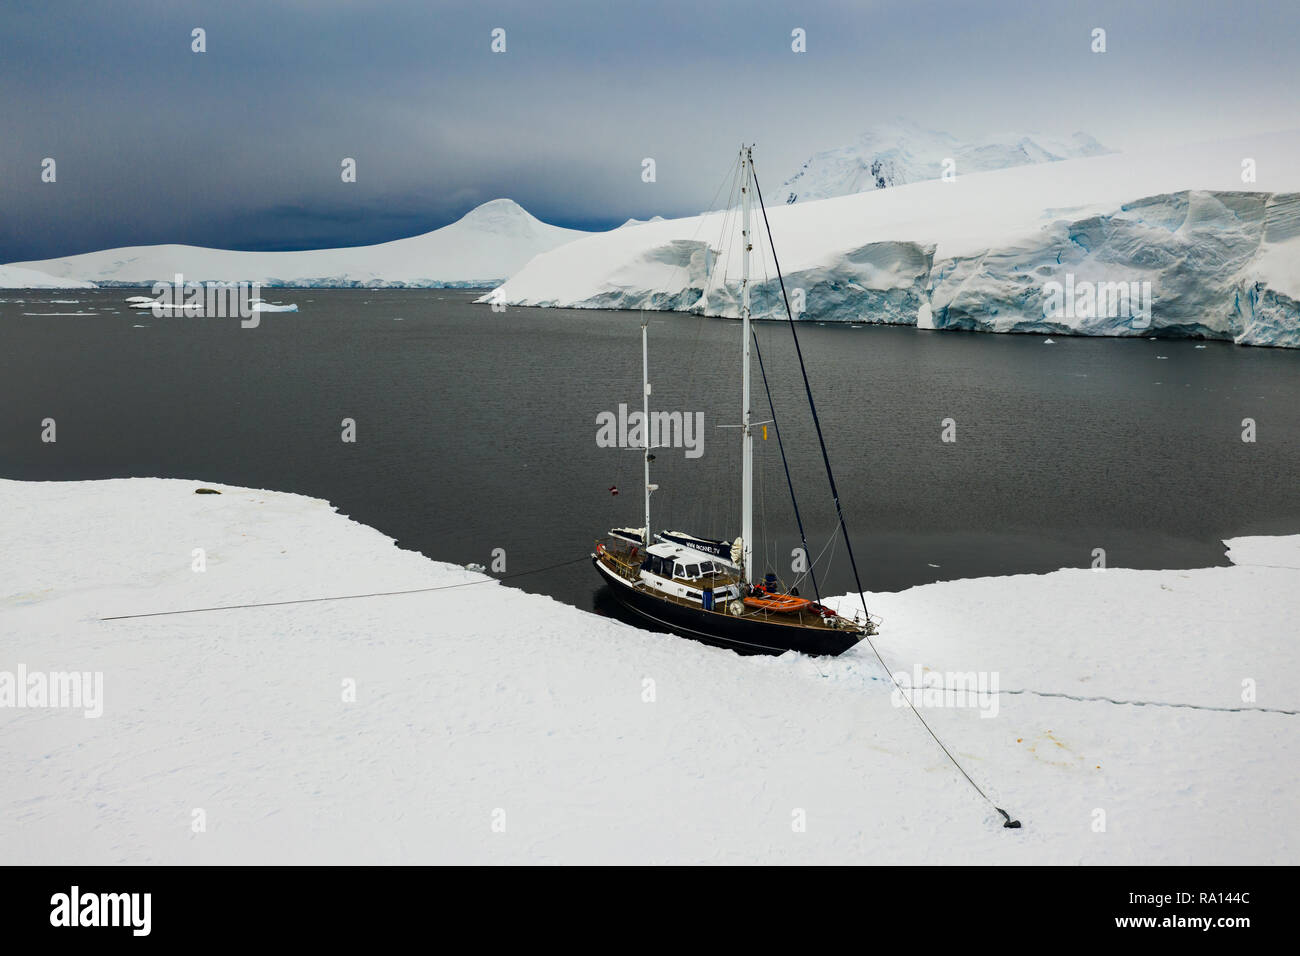 Docking / anchoring the sail boat to the sea ice near Port Lockroy, Antarctica - Stock Image